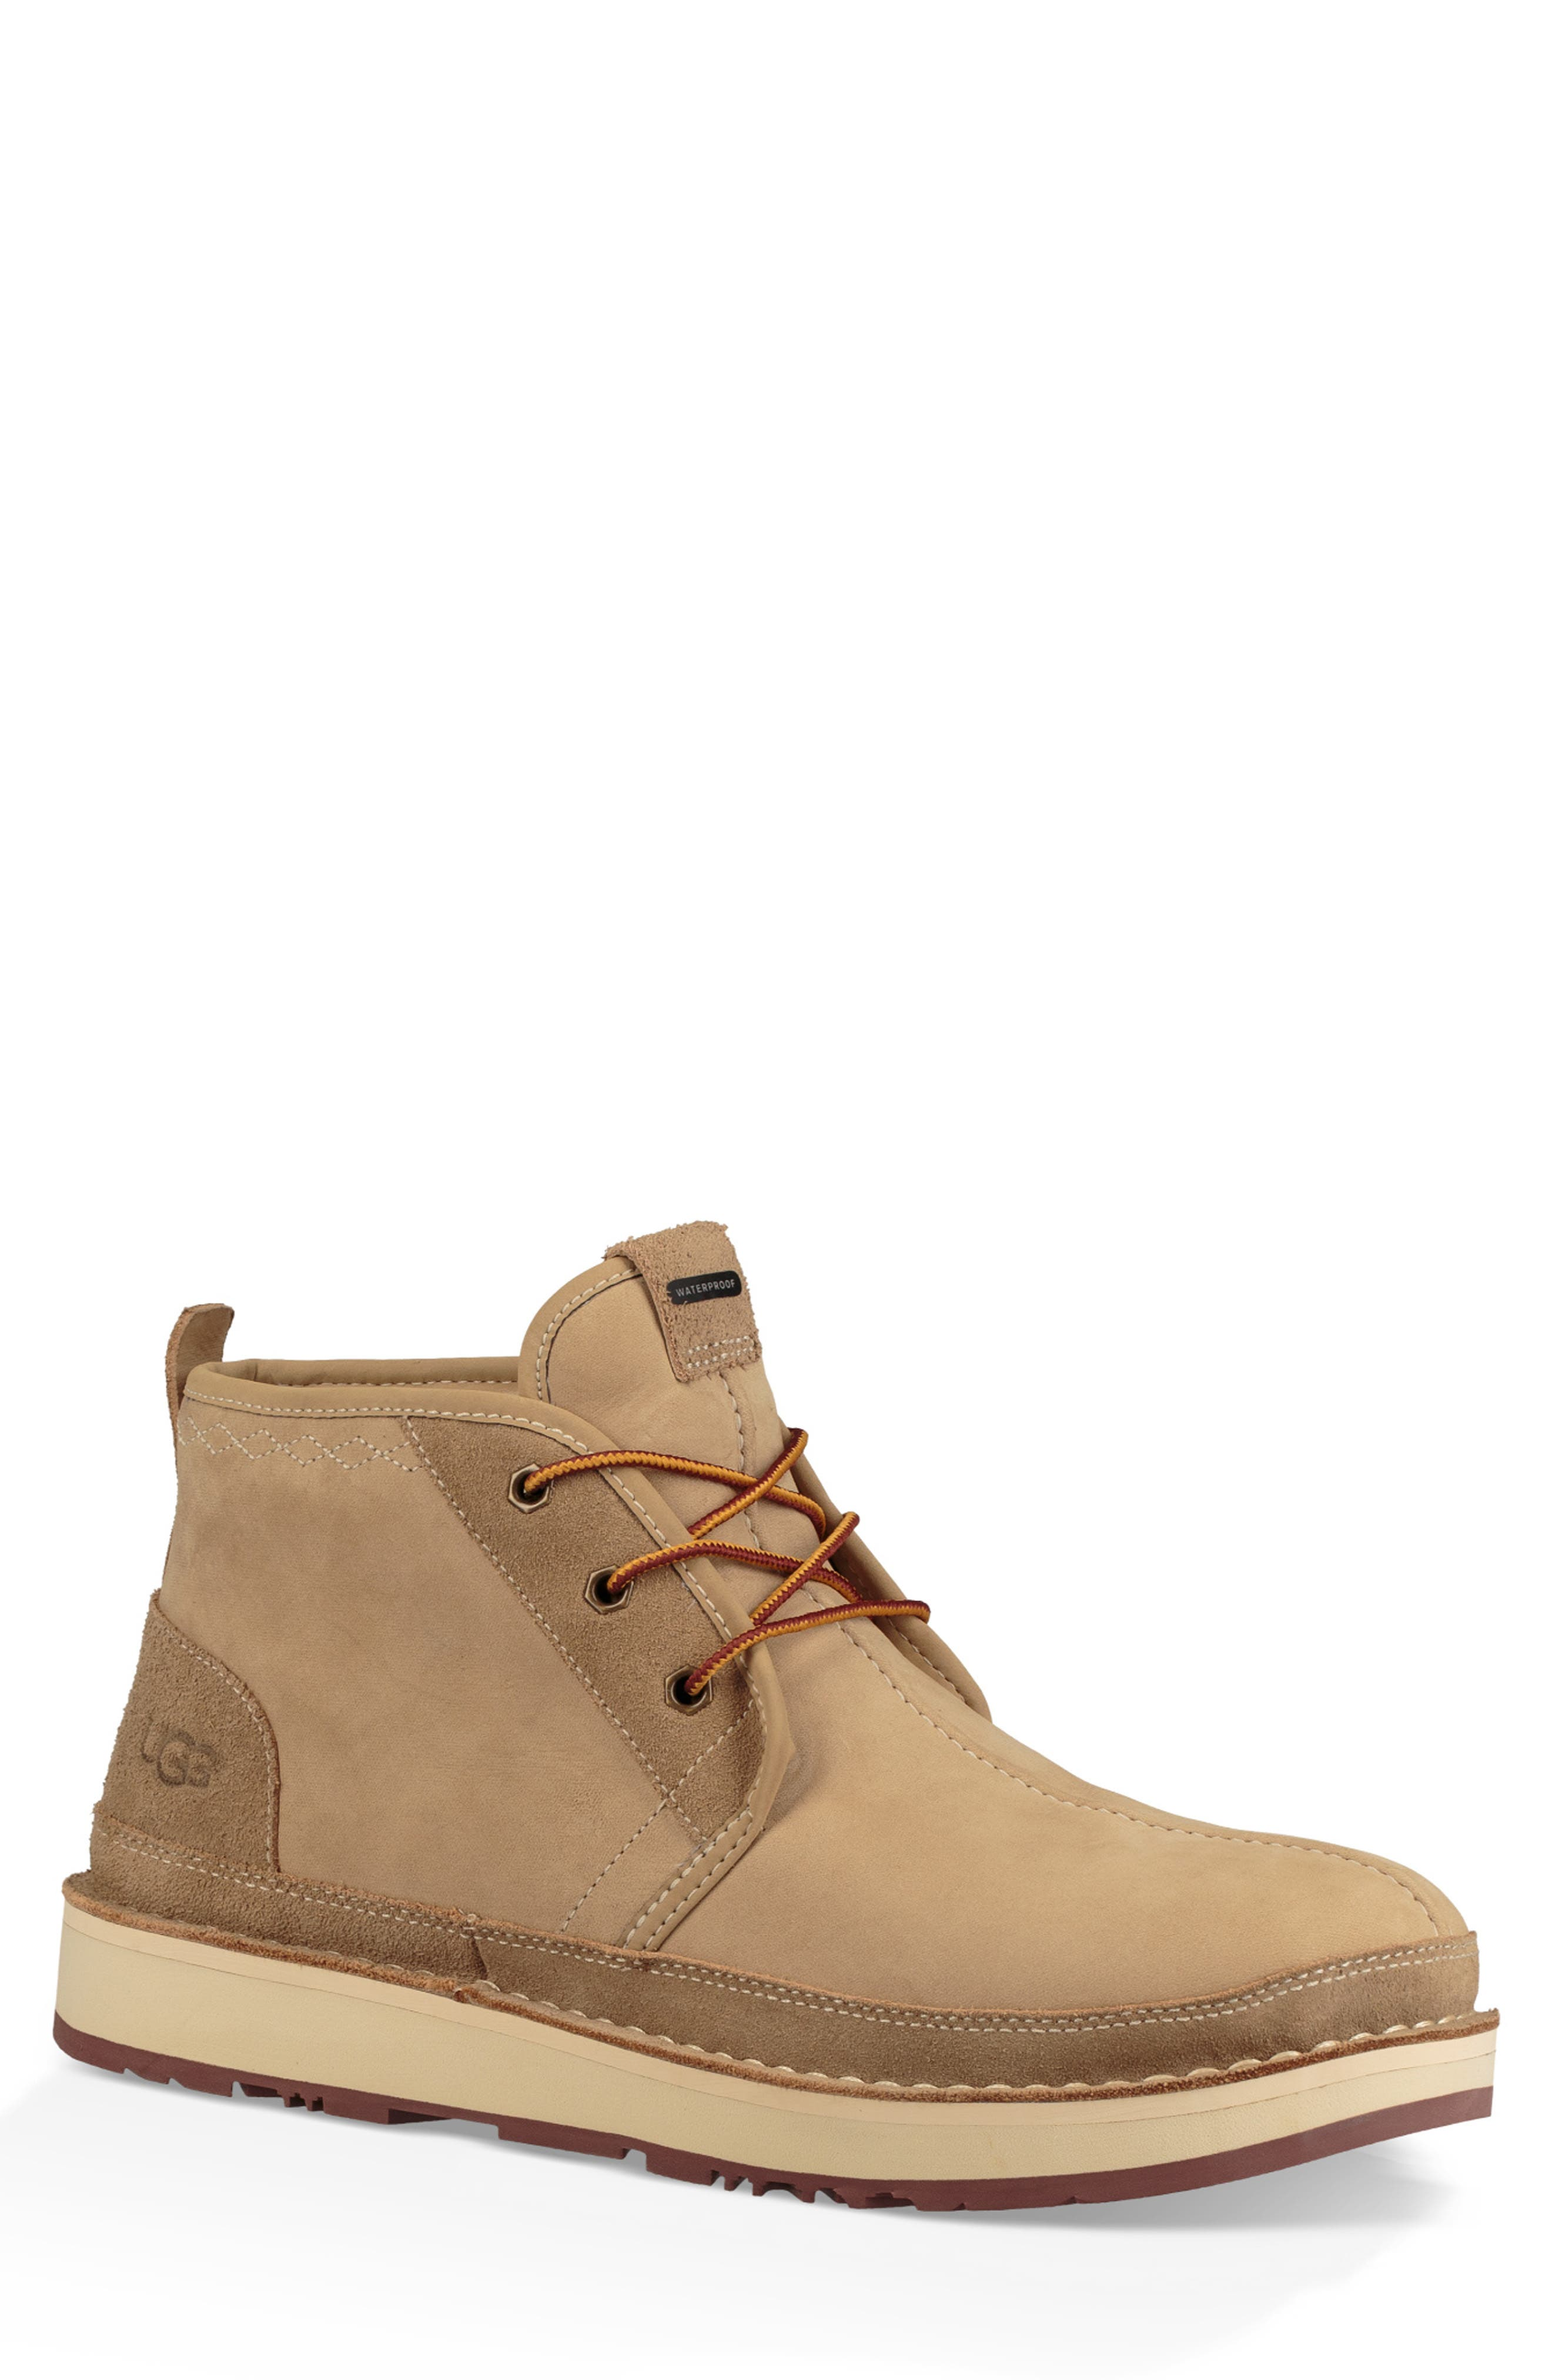 Avalance Neumel Waterproof Boot,                         Main,                         color, DESERT TAN